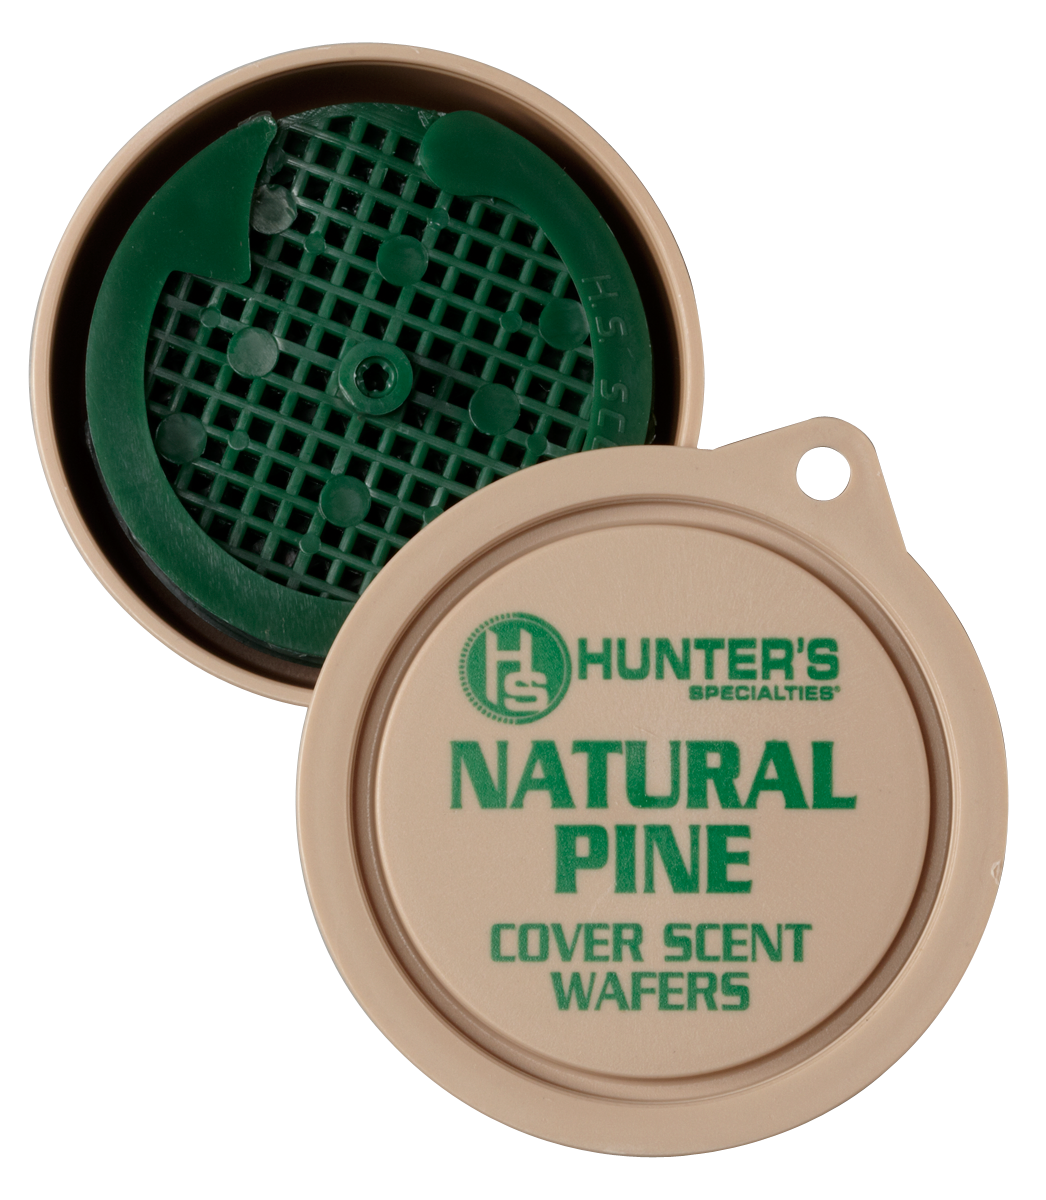 Hunters Specialties Primetime Natural Pine Cover Scent Wafers